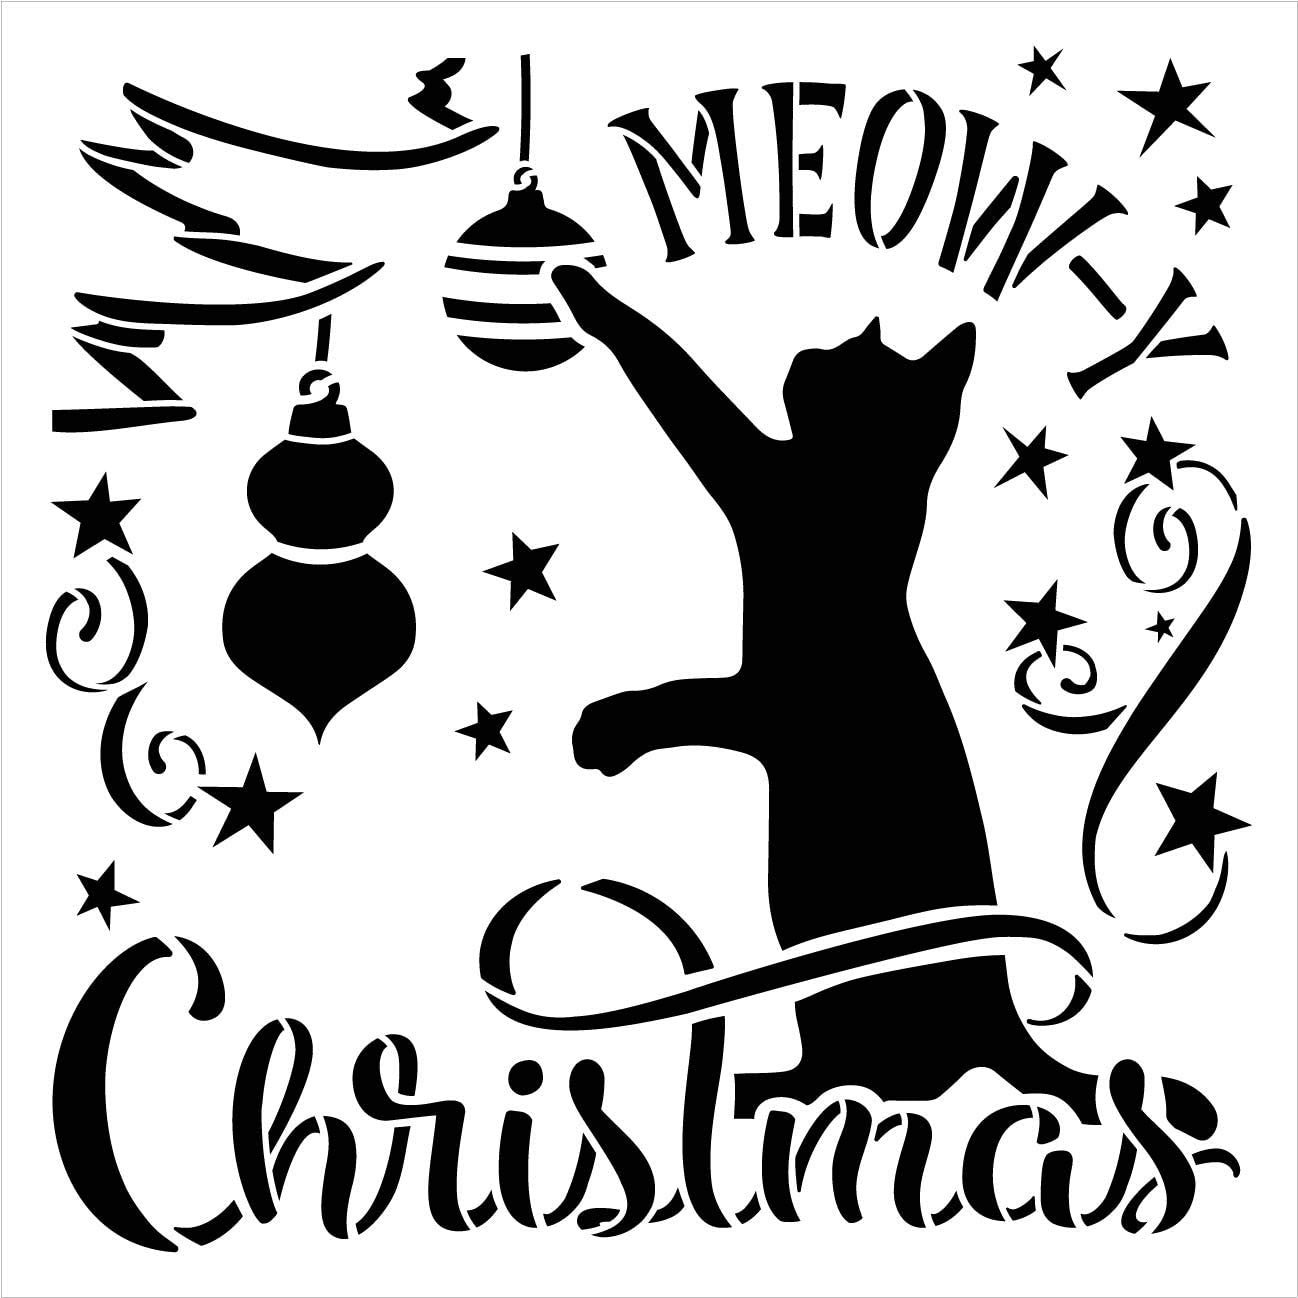 Meow-y Christmas Stencil by StudioR12   DIY Cat Lover Holiday Home Decor   Craft & Paint Wood Sign   Reusable Mylar Template   Tree Ornament Star Cursive Script   Select Size